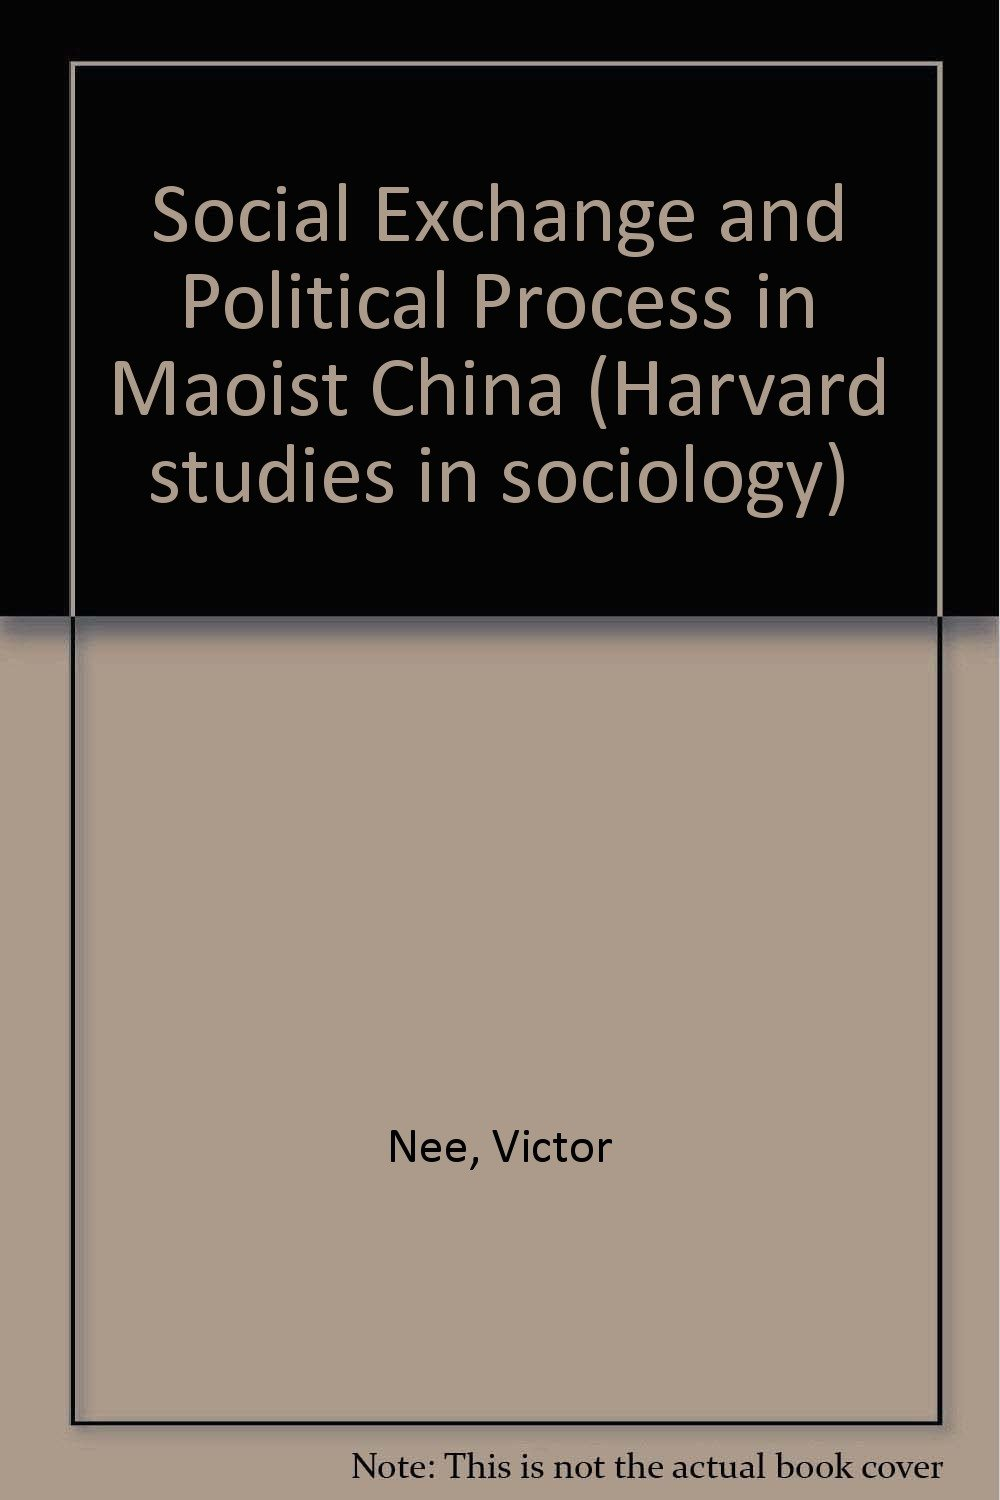 Social Exchange and Political Process in China by Victor Nee